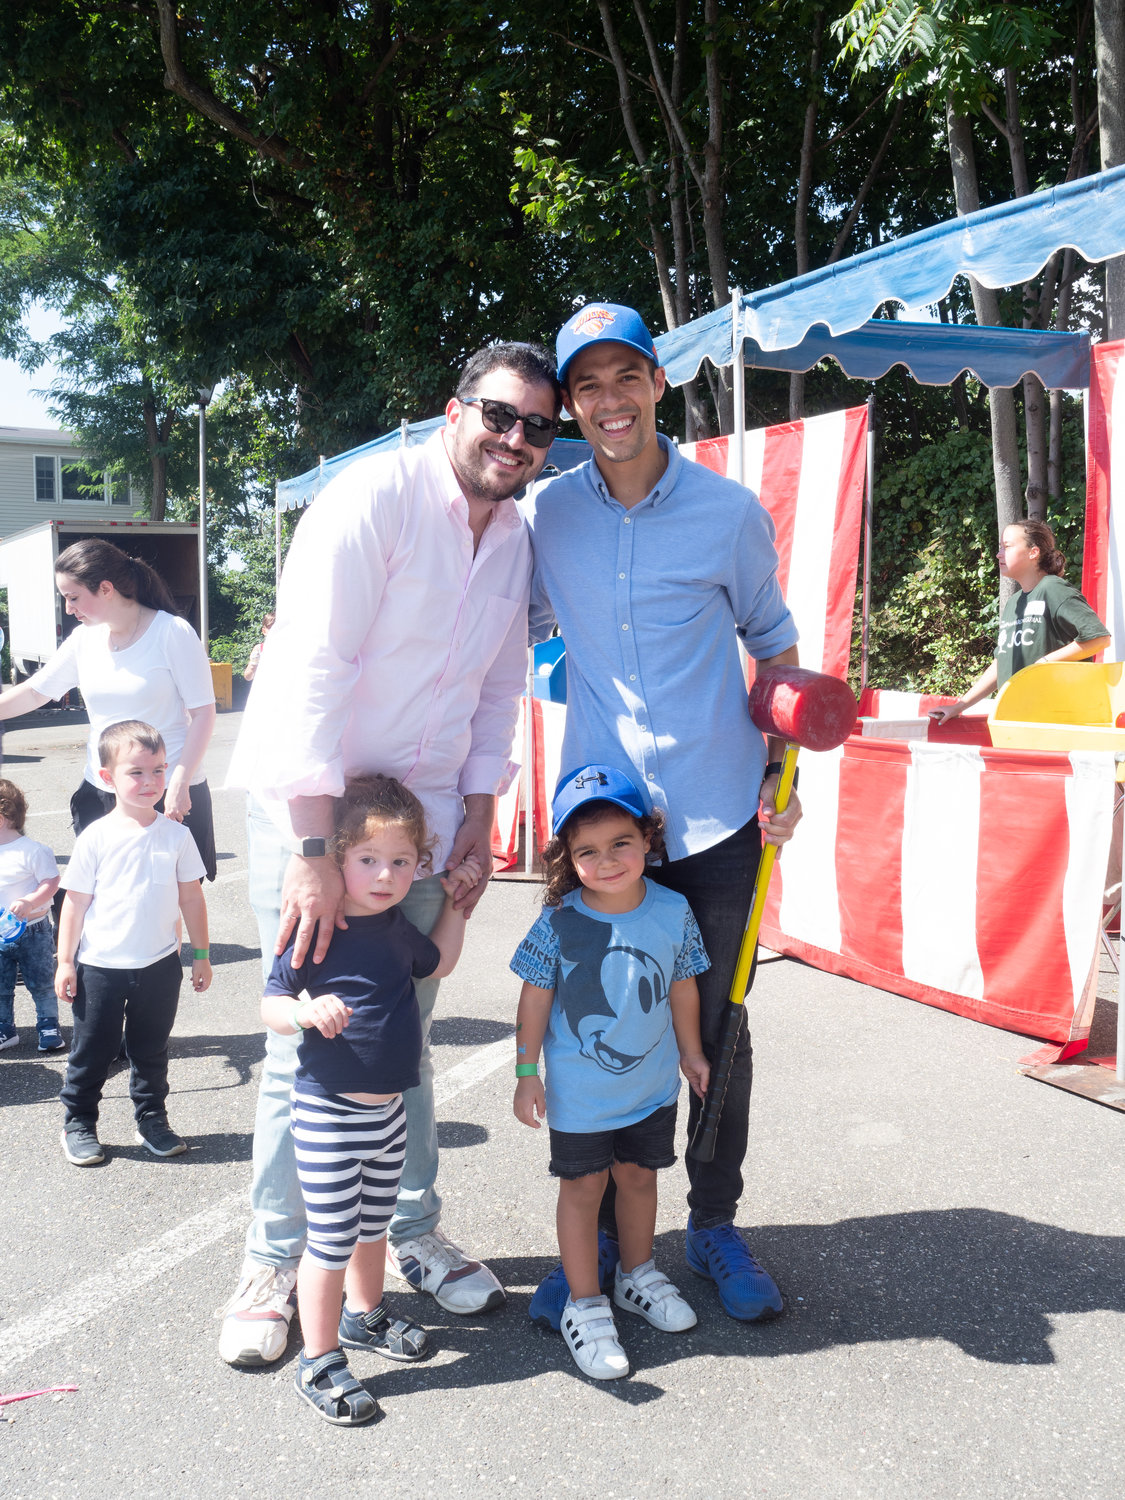 Families joined together at the JCC Fall Festival. Michael Nadjari and Nati Haboura with fathers, Jacob Nadjari, left, and Joseph Ouriel Haboura.